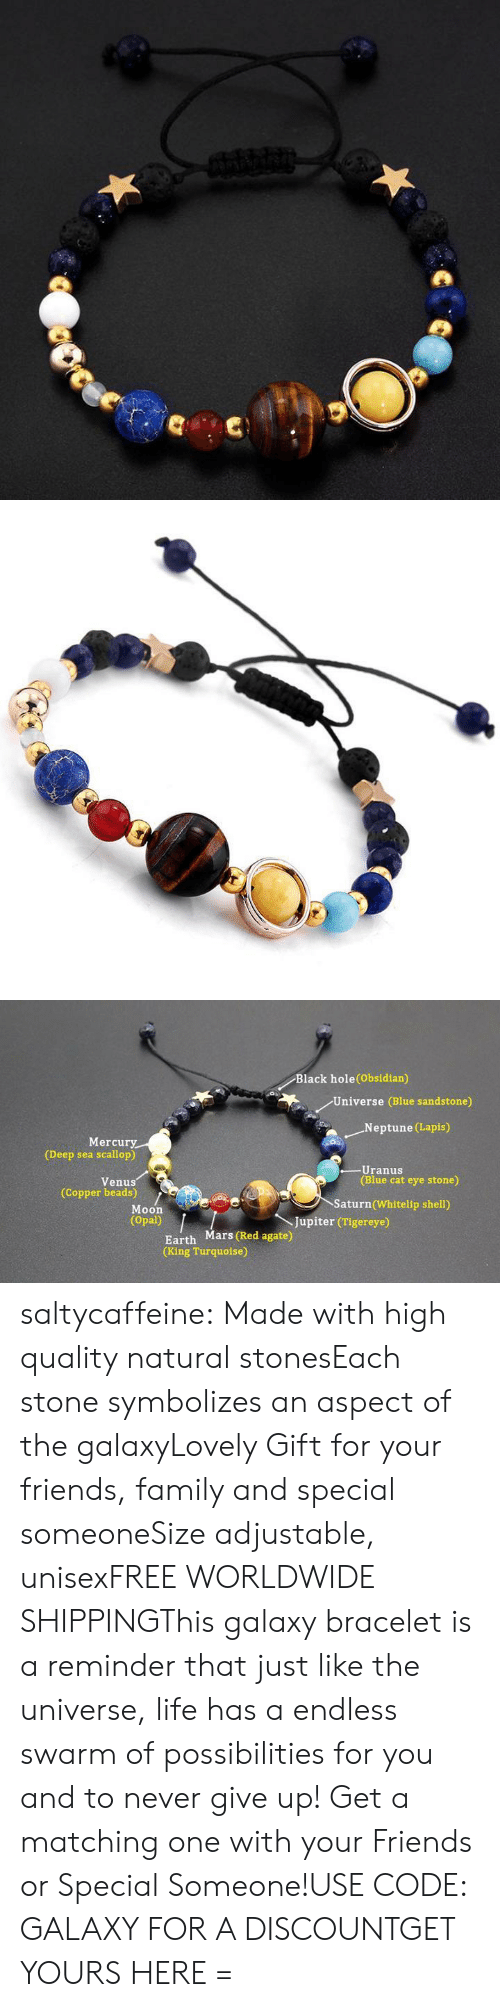 Family, Friends, and Life: Black hole(Obsidian)  Universe (Blue sandstone)  .Neptune (Lapis)  Mercury  (Deep sea scallop)  -Uranus  (Blue cat eye stone)  Venus  (Copper beads)  Saturn (Whitelip shell)  Moon  (Opal)  Jupiter (Tigereye)  Earth Mars (Red agate)  (King Turquoise) saltycaffeine:  Made with high quality natural stonesEach stone symbolizes an aspect of the galaxyLovely Gift for your friends, family and special someoneSize adjustable, unisexFREE WORLDWIDE SHIPPINGThis galaxy bracelet is a reminder that just like the universe, life has a endless swarm of possibilities for you and to never give up! Get a matching one with your Friends or Special Someone!USE CODE: GALAXY FOR A DISCOUNTGET YOURS HERE =